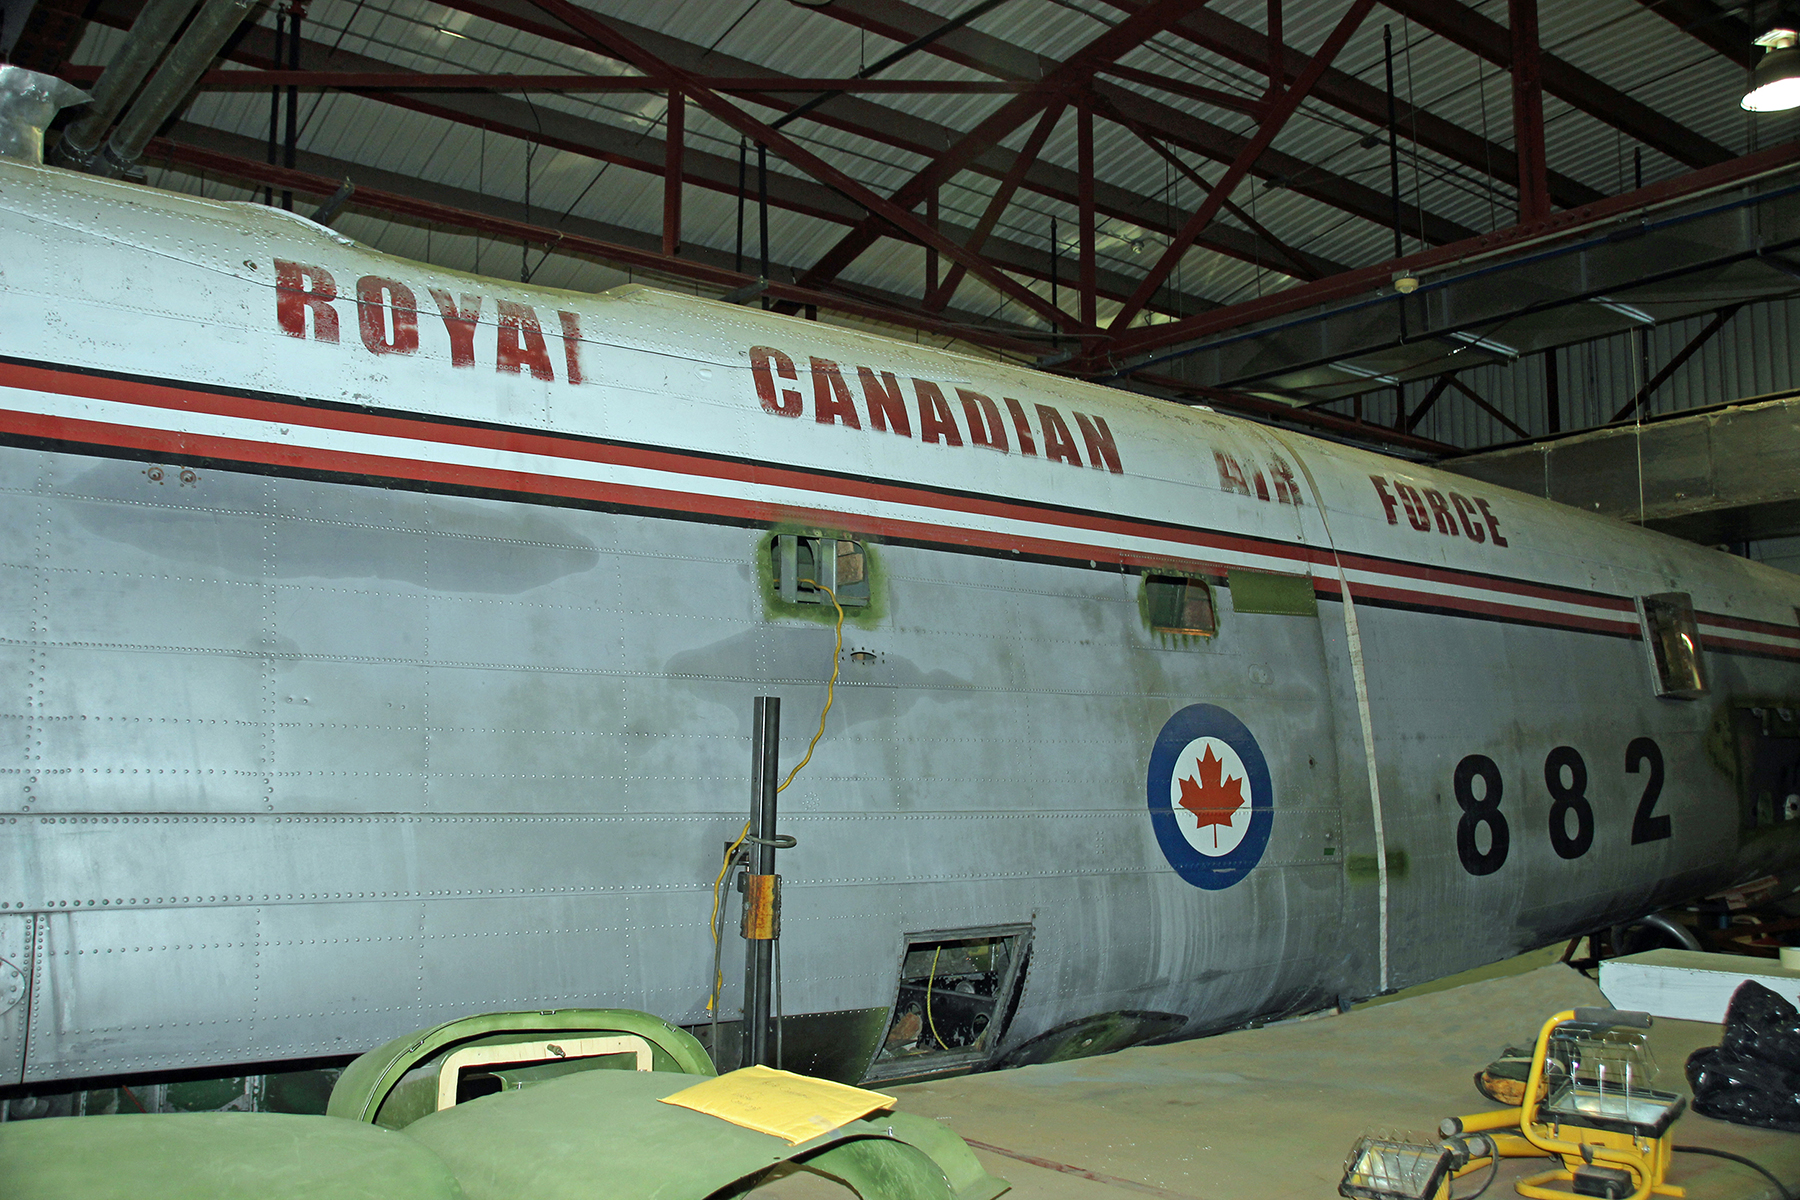 The fuselage of Lancaster KB882, which came to the National Air Force Museum of Canada in September 2017 from Edmundston, New Brunswick, is currently undergoing restoration at the museum. PHOTO: Catherine Stutt